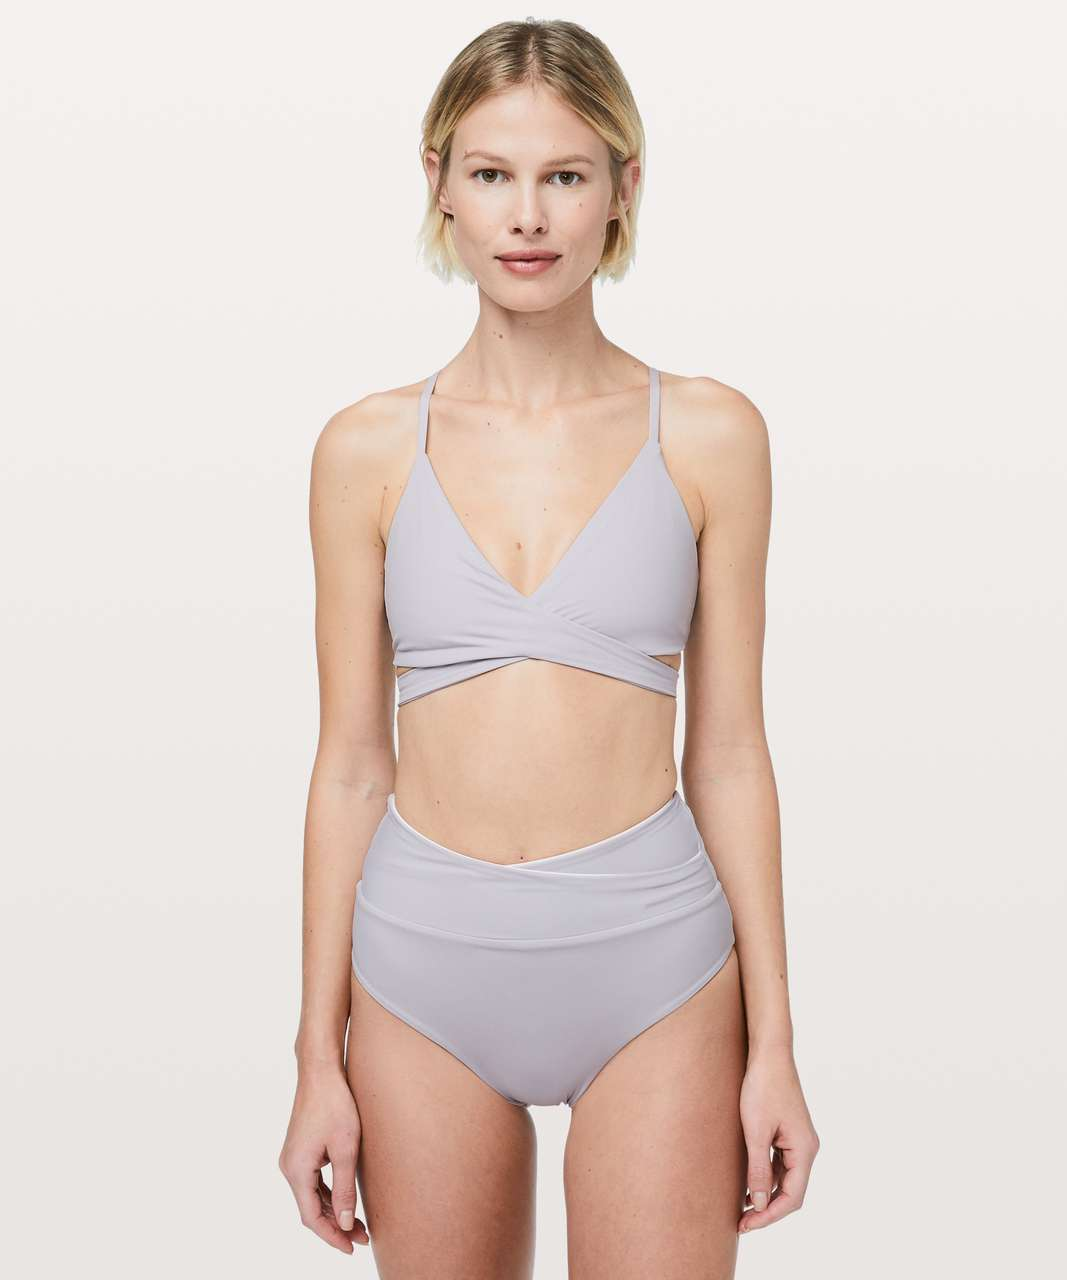 Lululemon Tied To Tide Swim Top - Silver Lilac